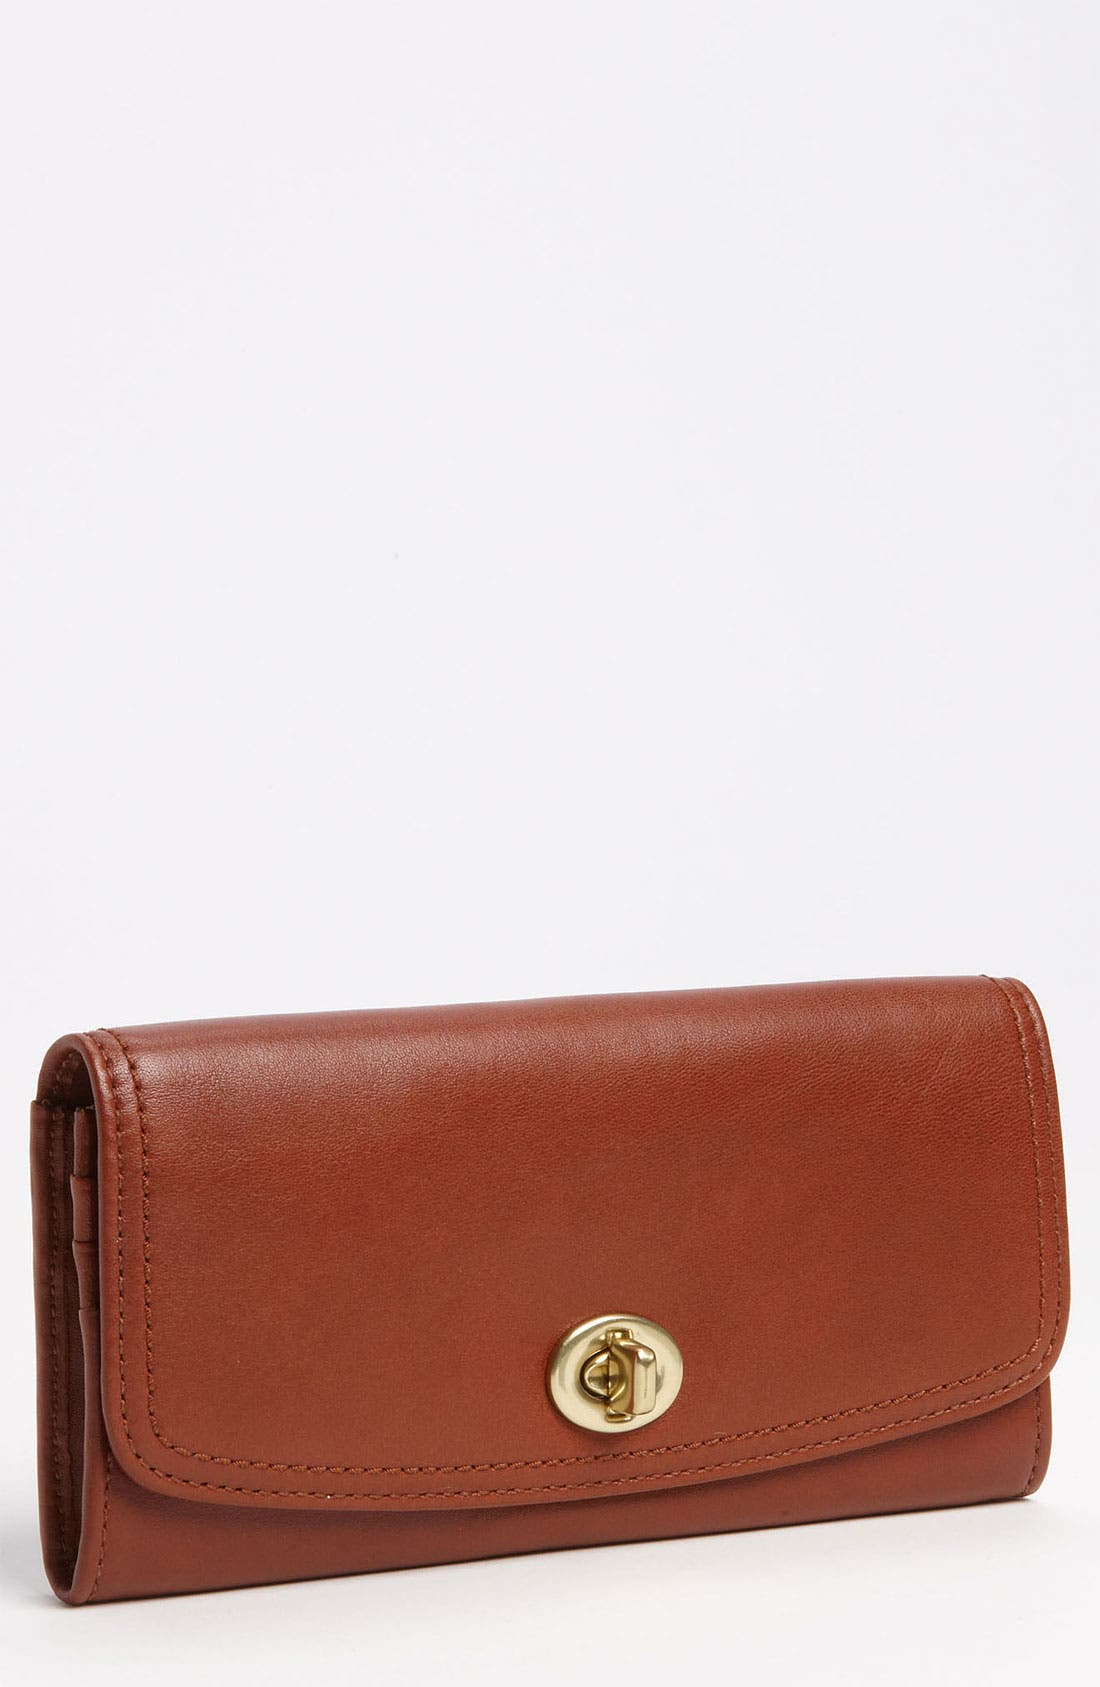 Main Image - COACH 'Legacy - Slim' Leather Envelope Wallet